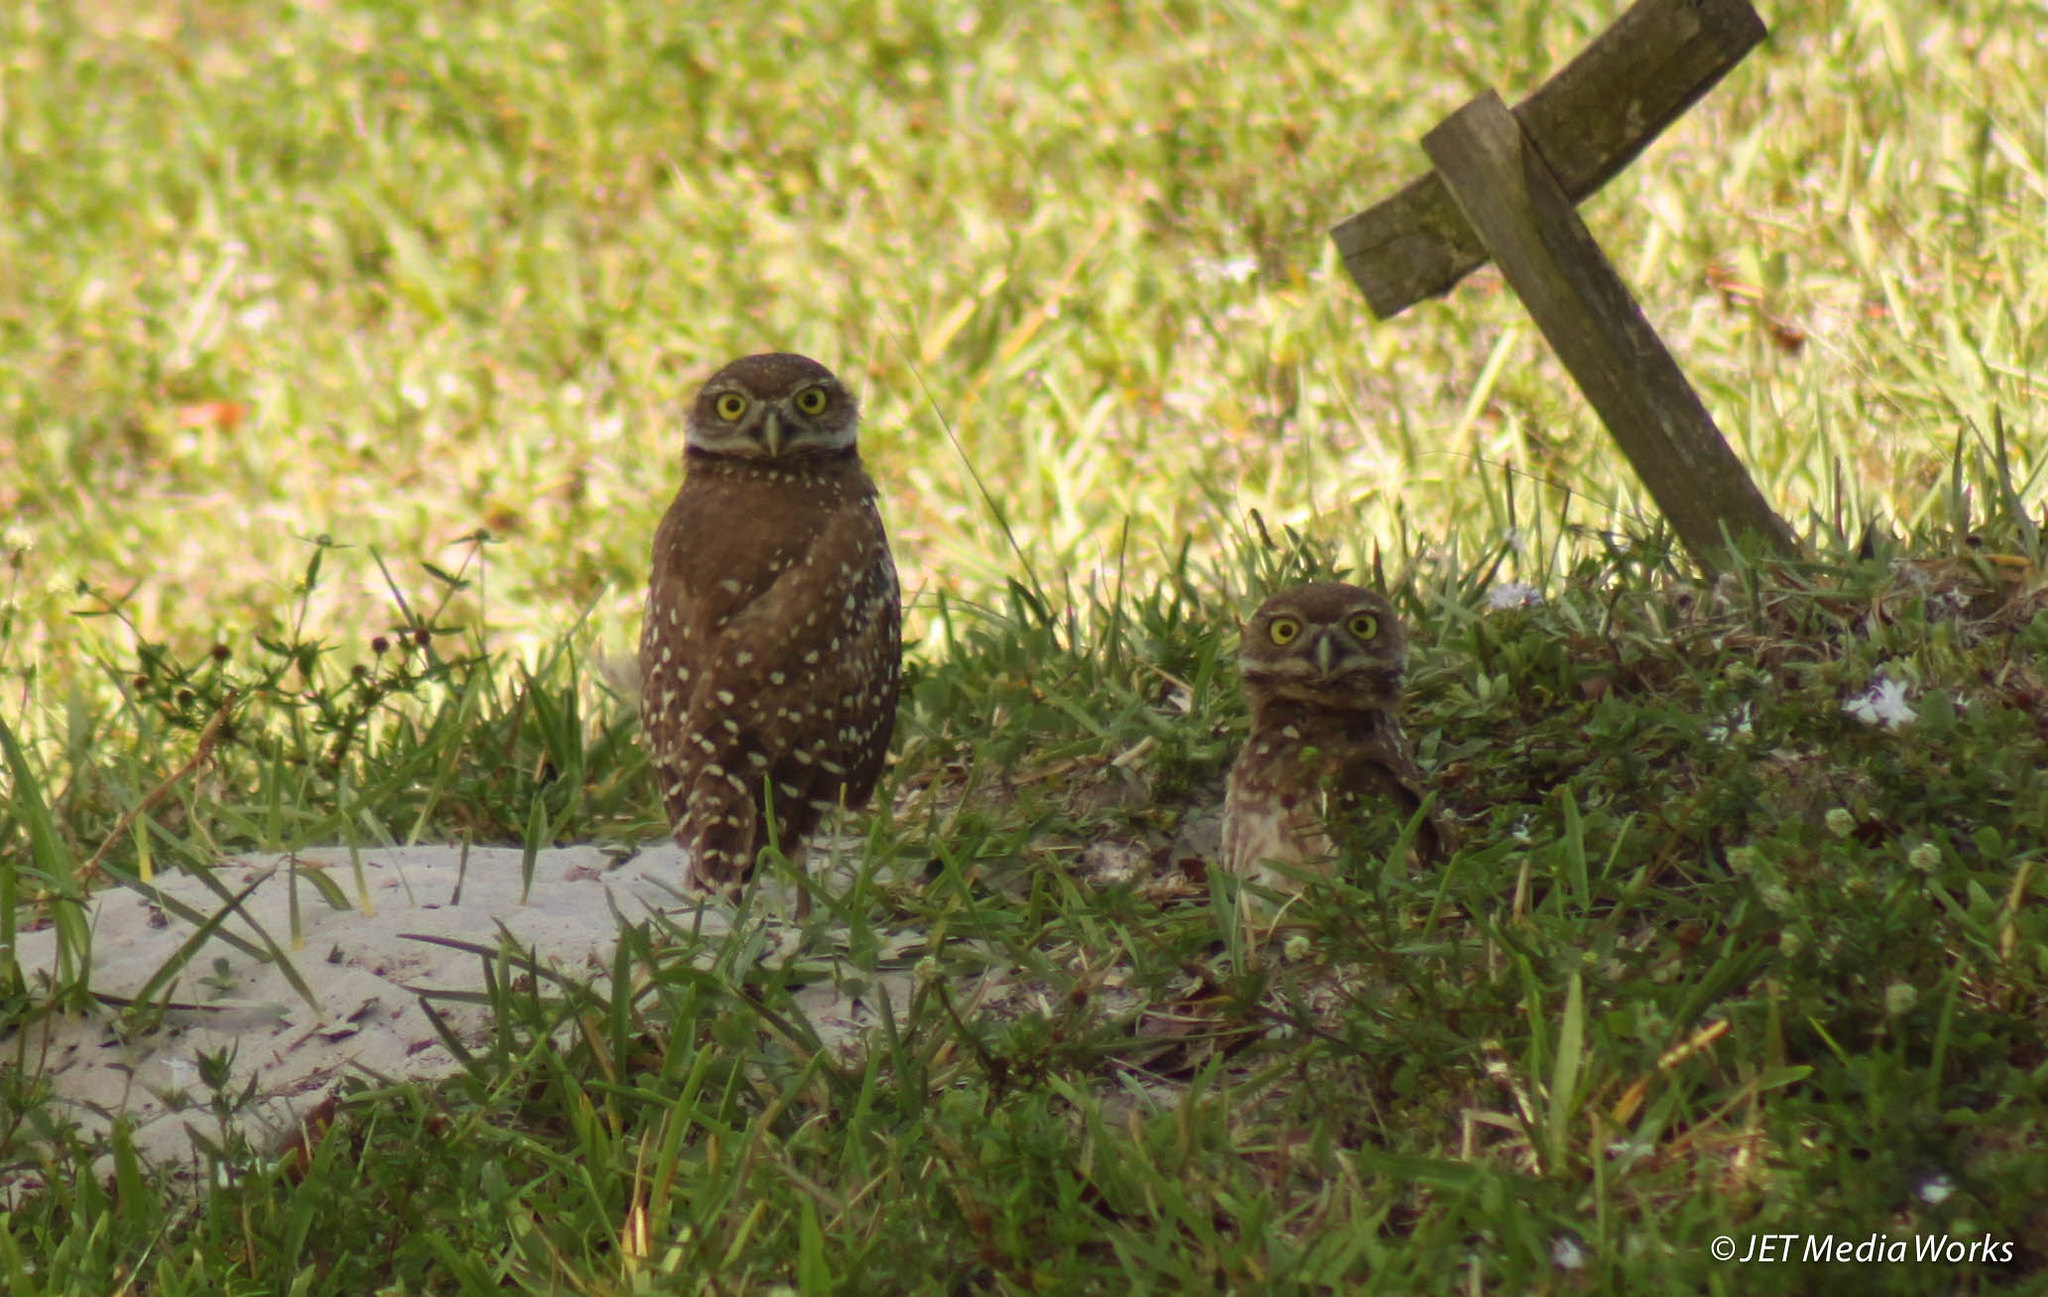 Burrrowing Owls